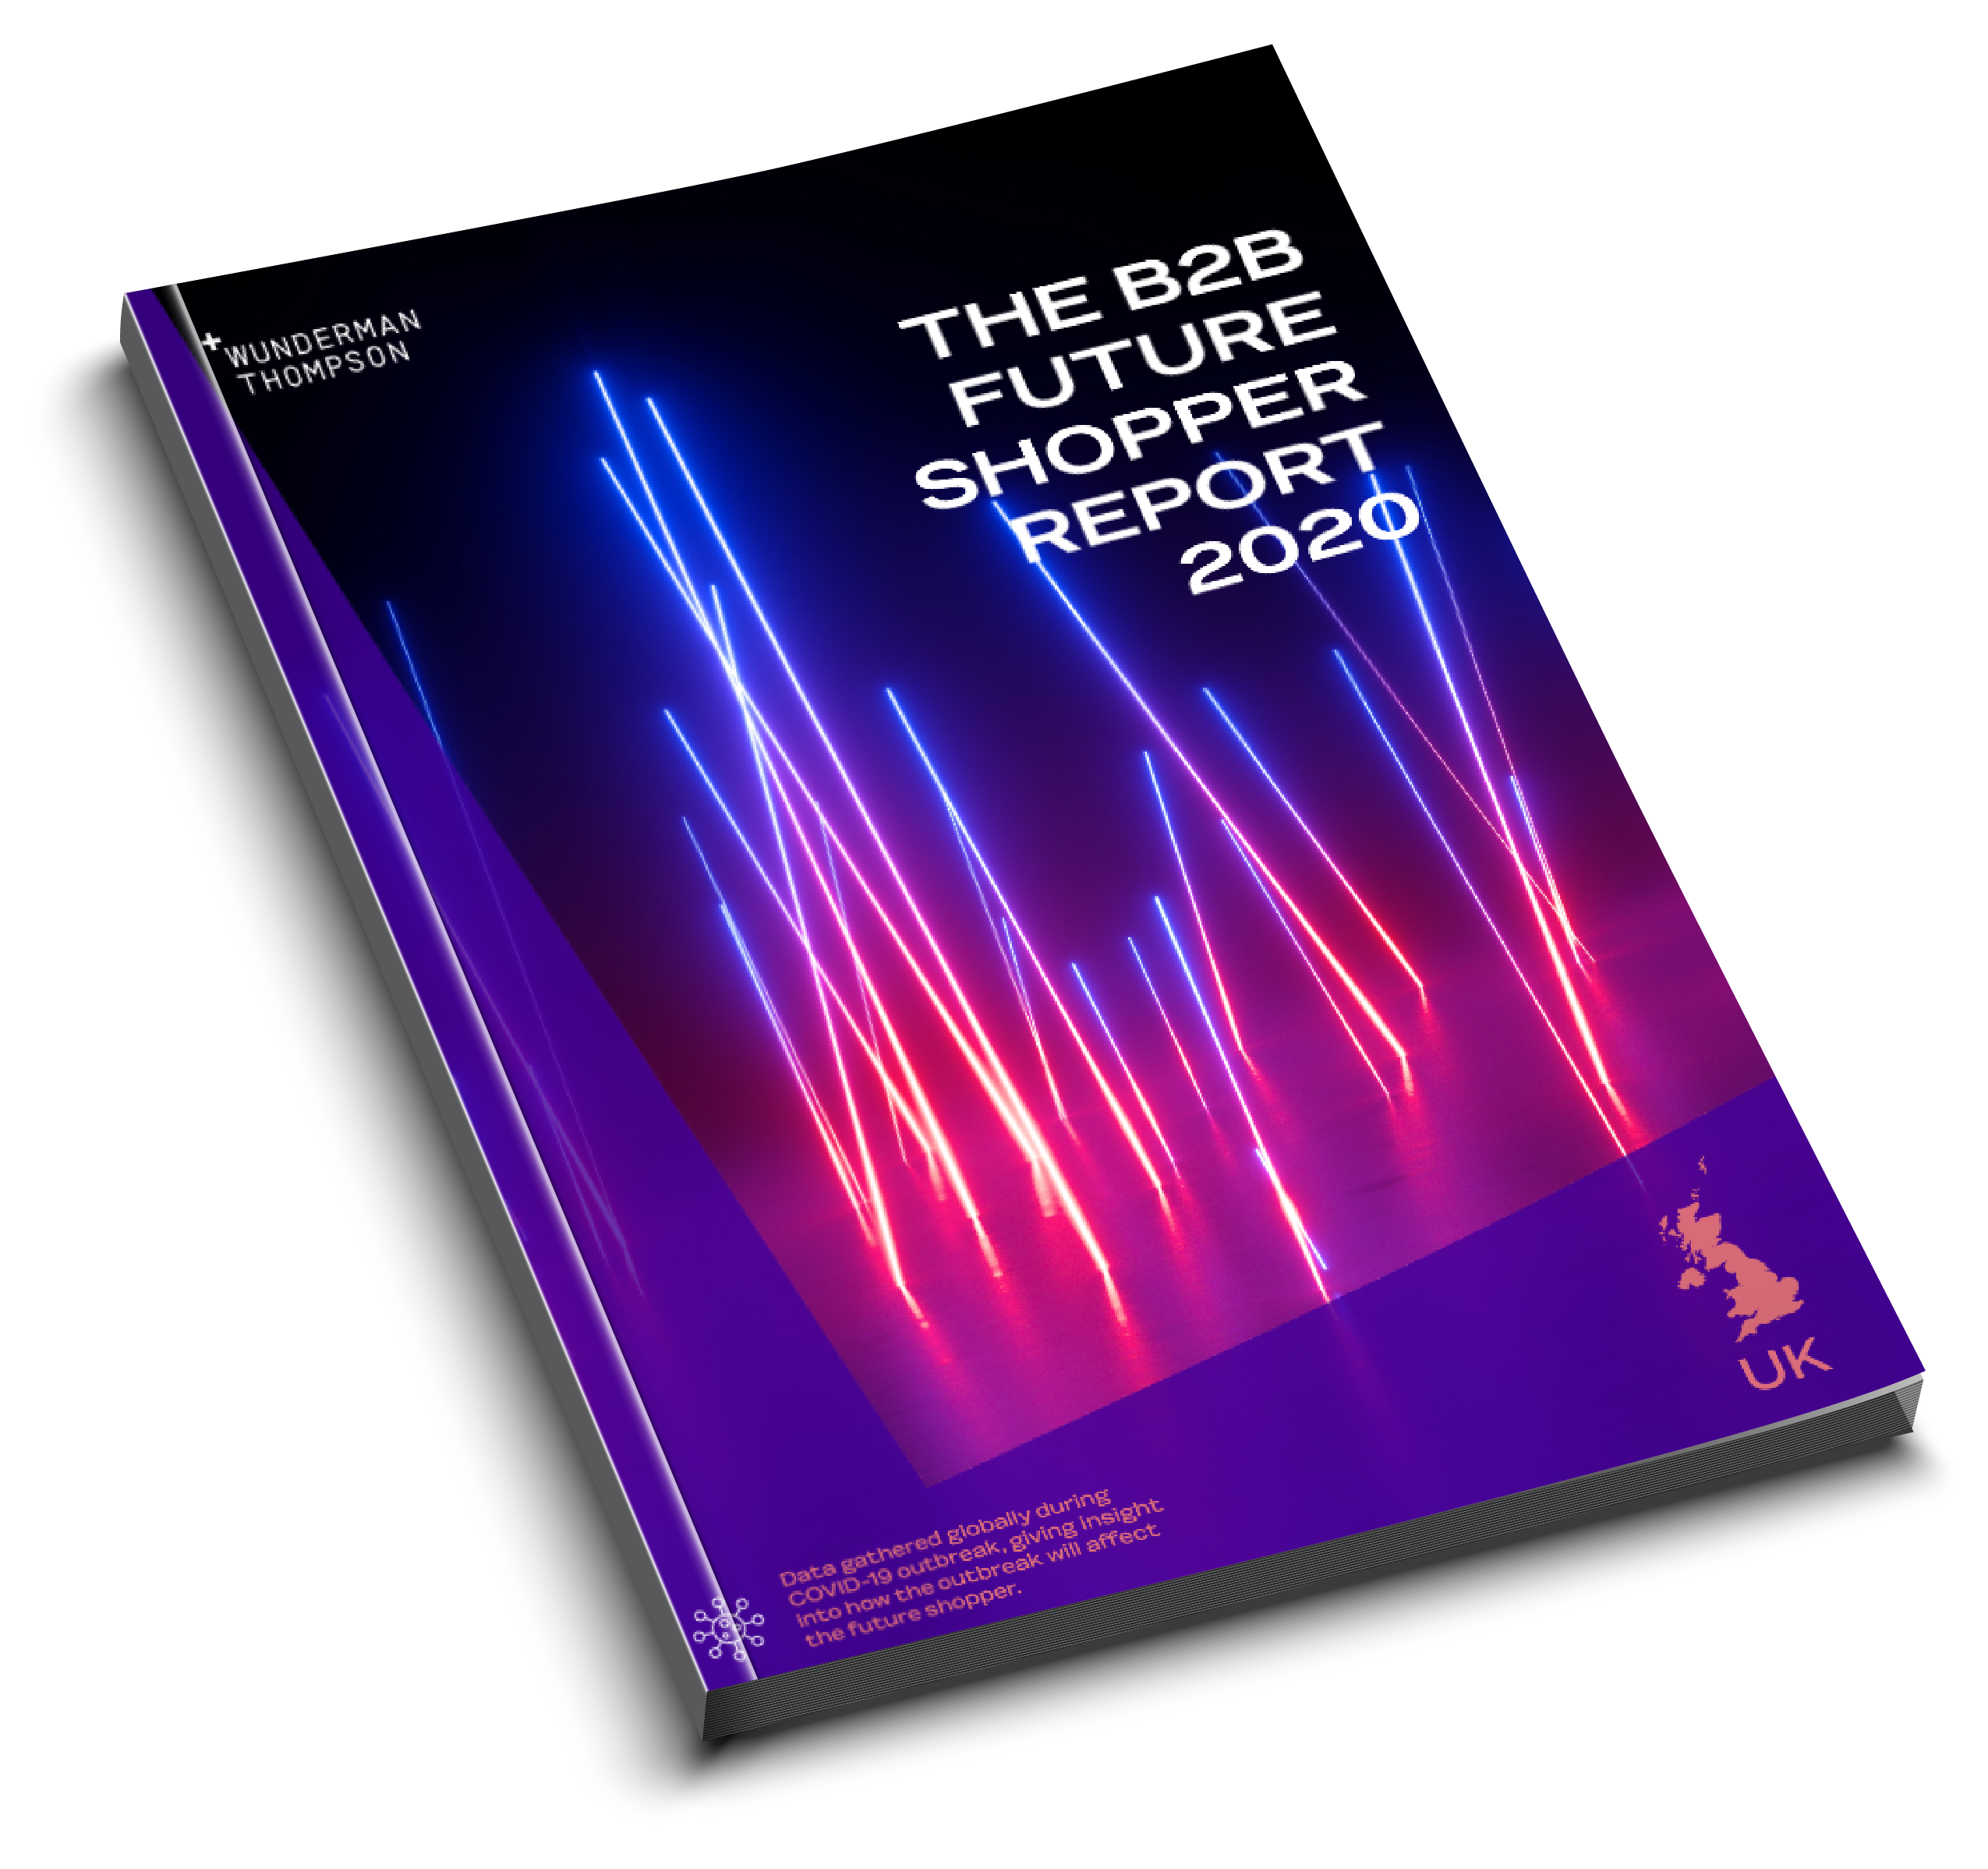 The Future Shopepr B2B UK brochure